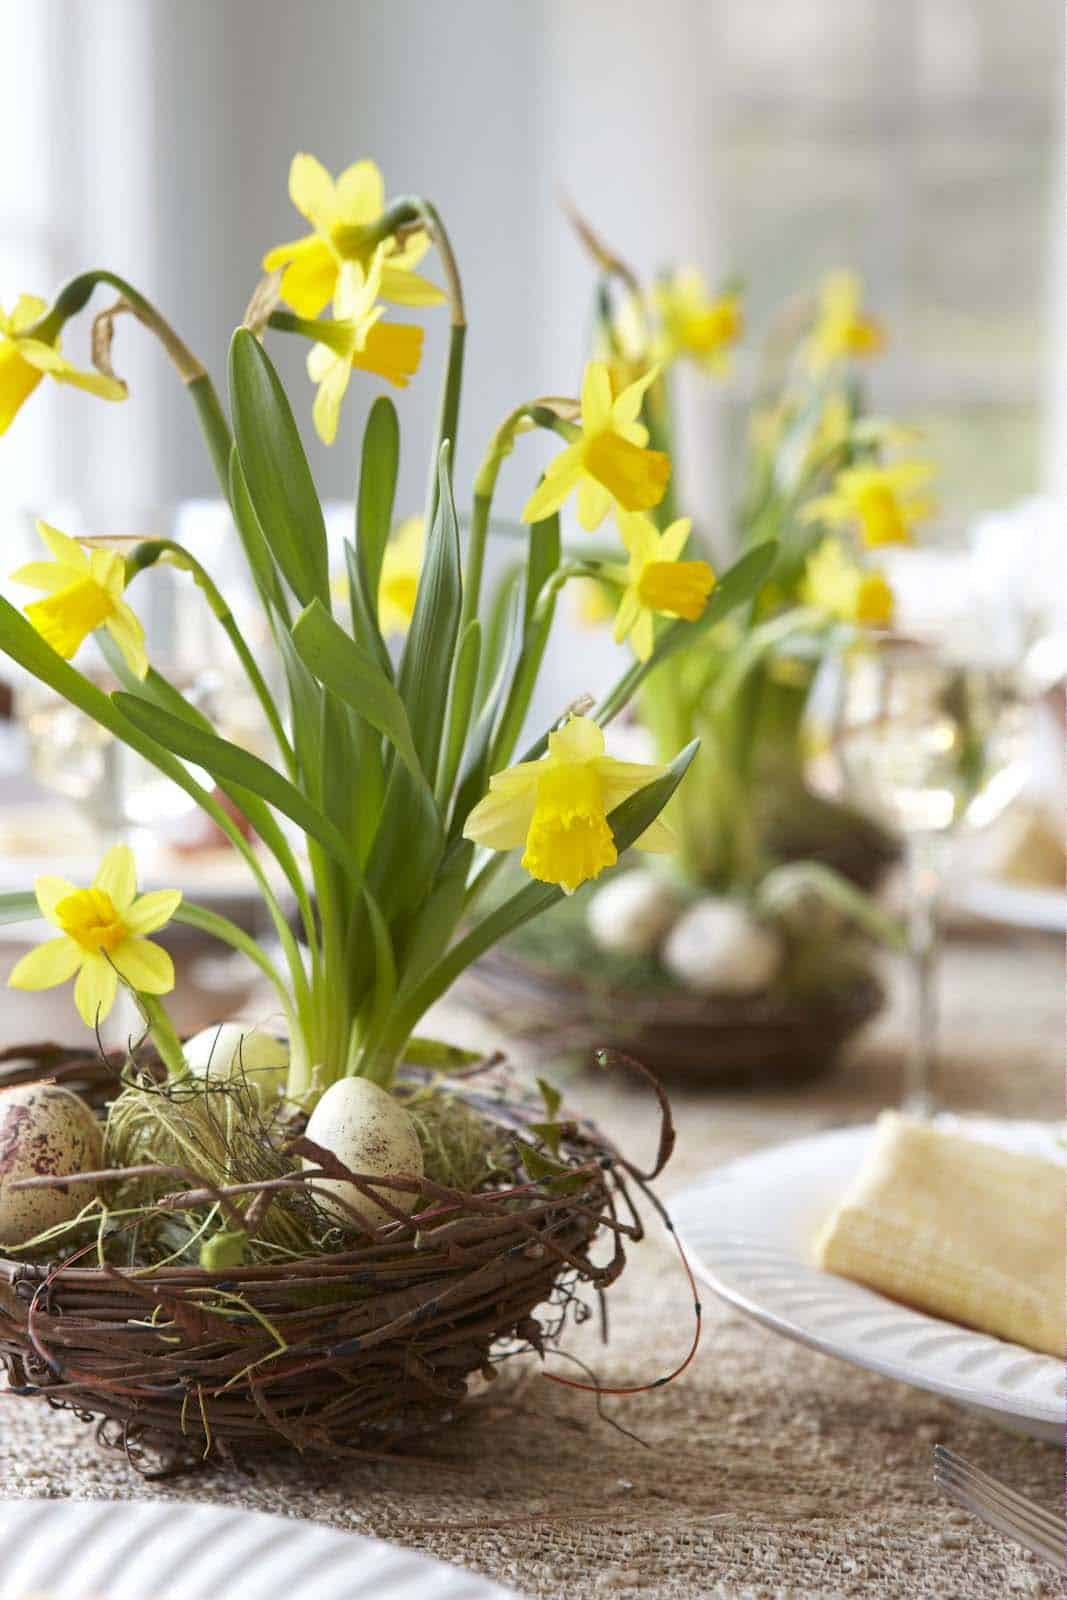 How To Decorate Your Home With Spring Flower Arrangements-24-1 Kindesign